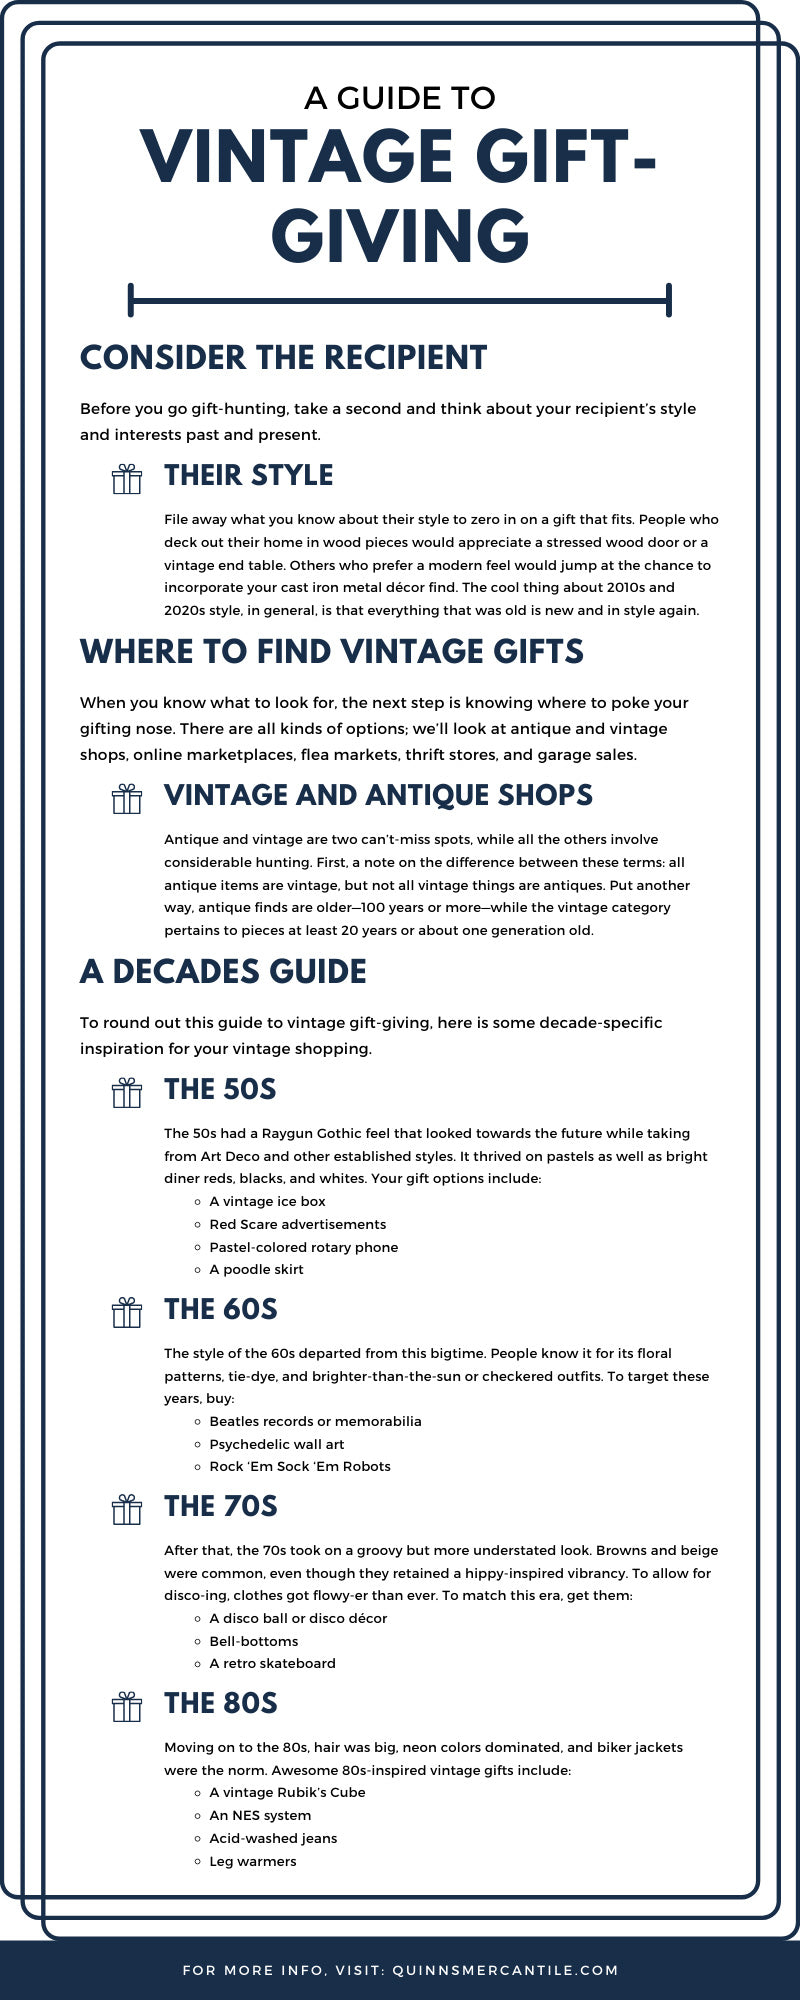 A Guide To Vintage Gift-Giving infographic